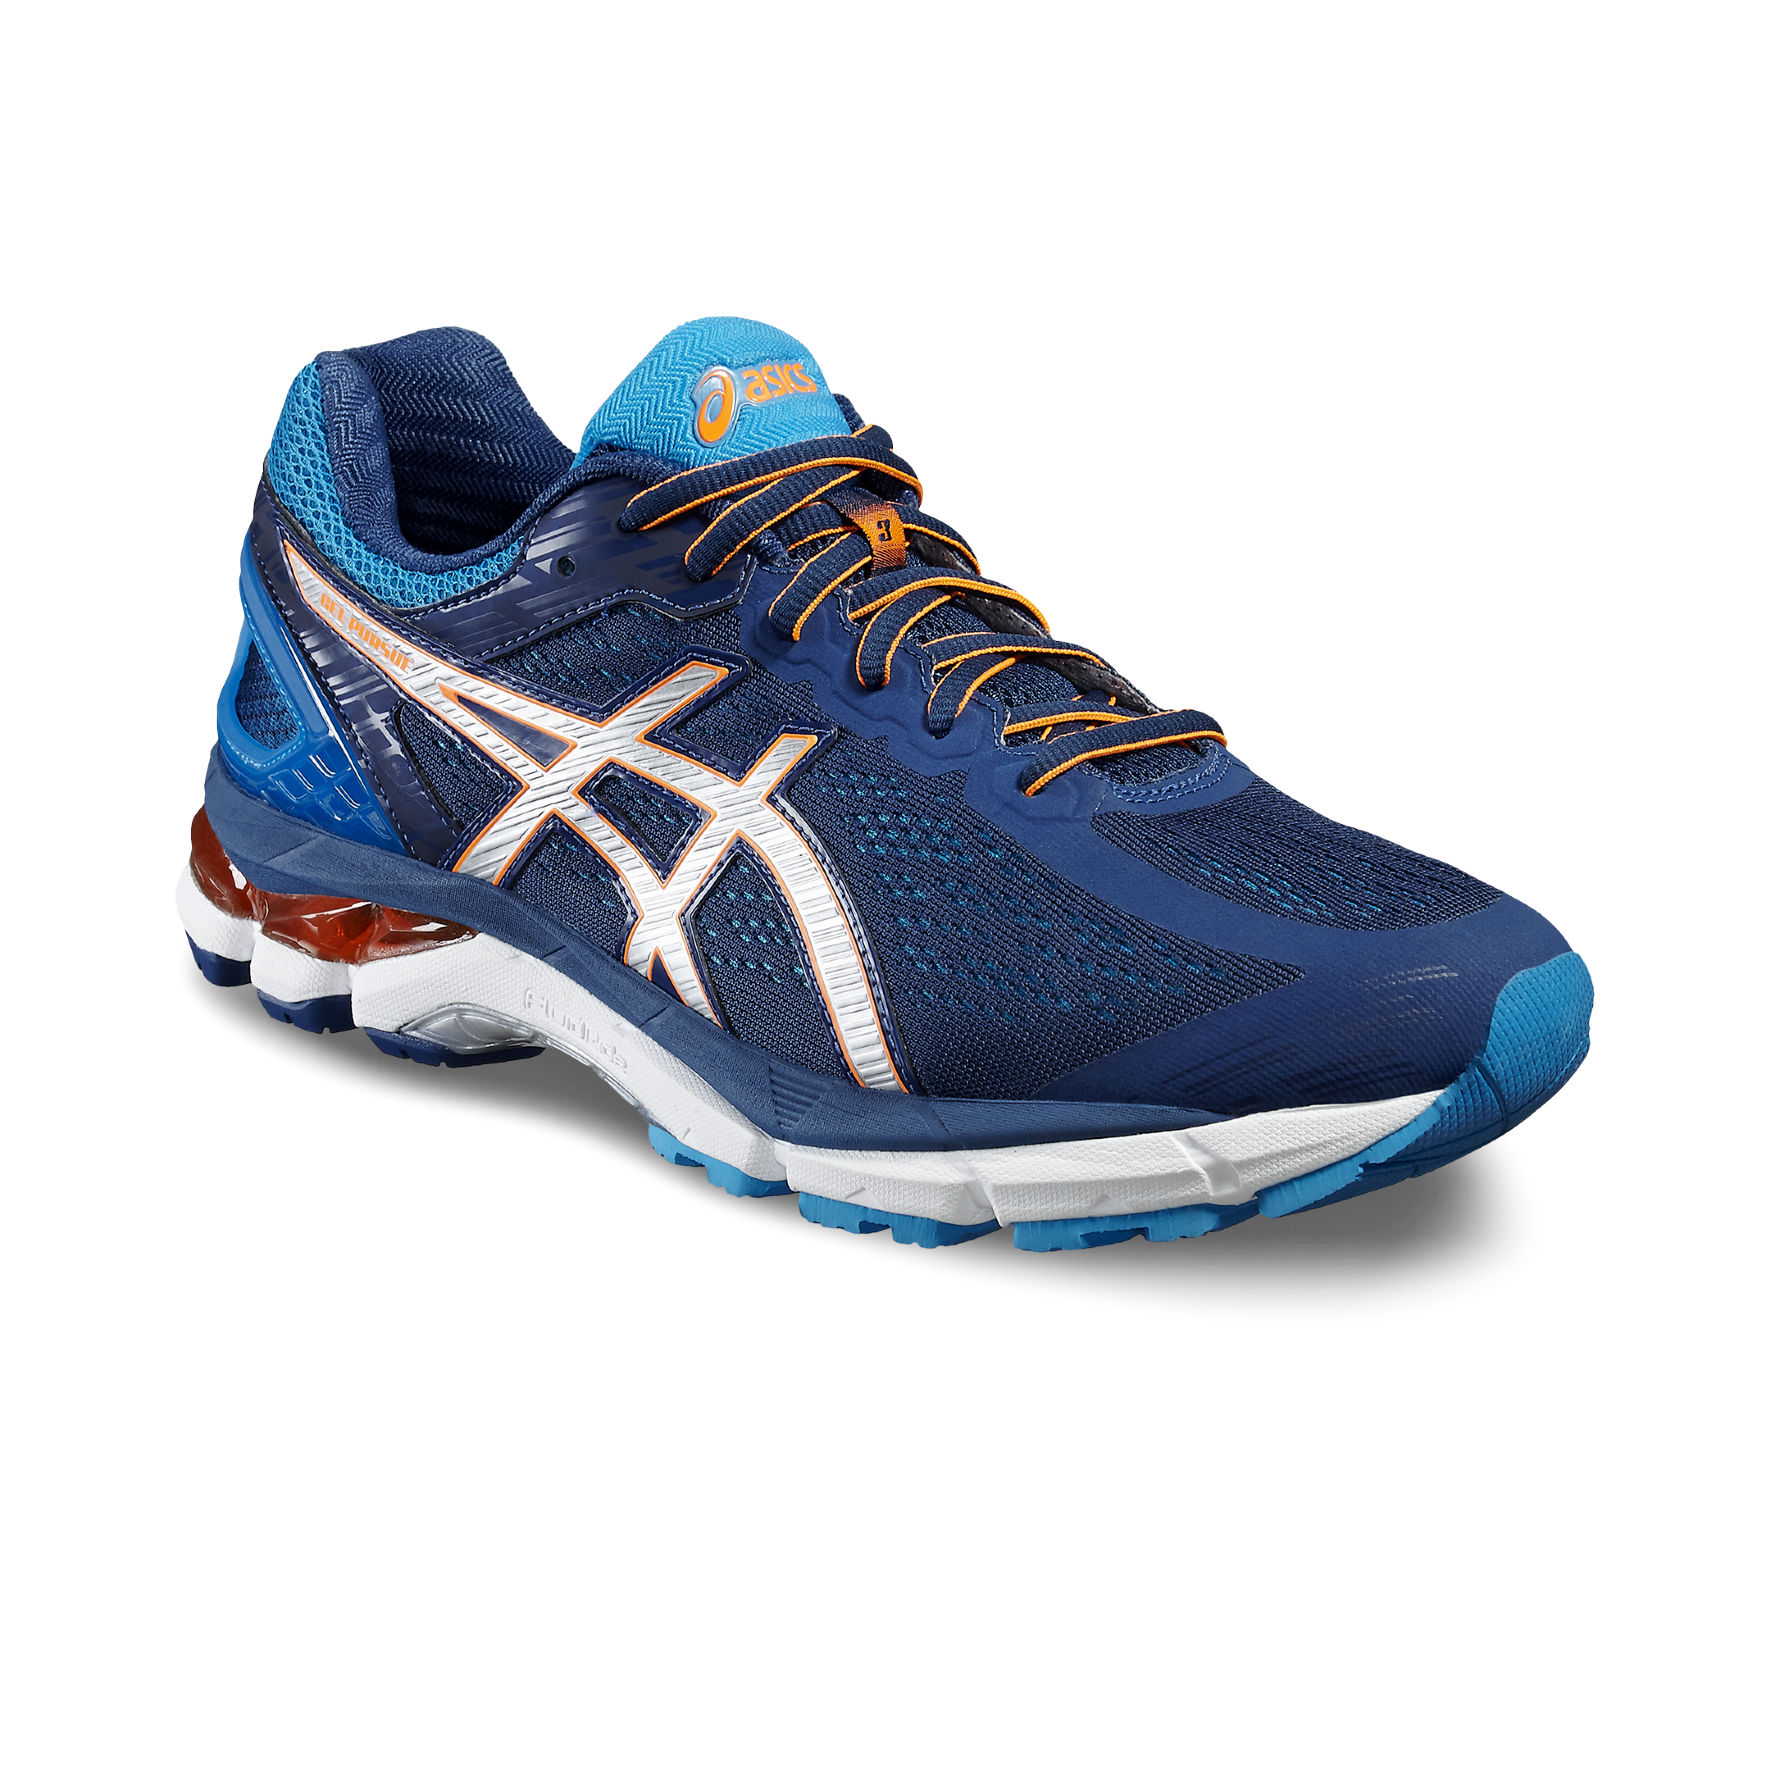 Asics Gel Pursue 3 in Blau